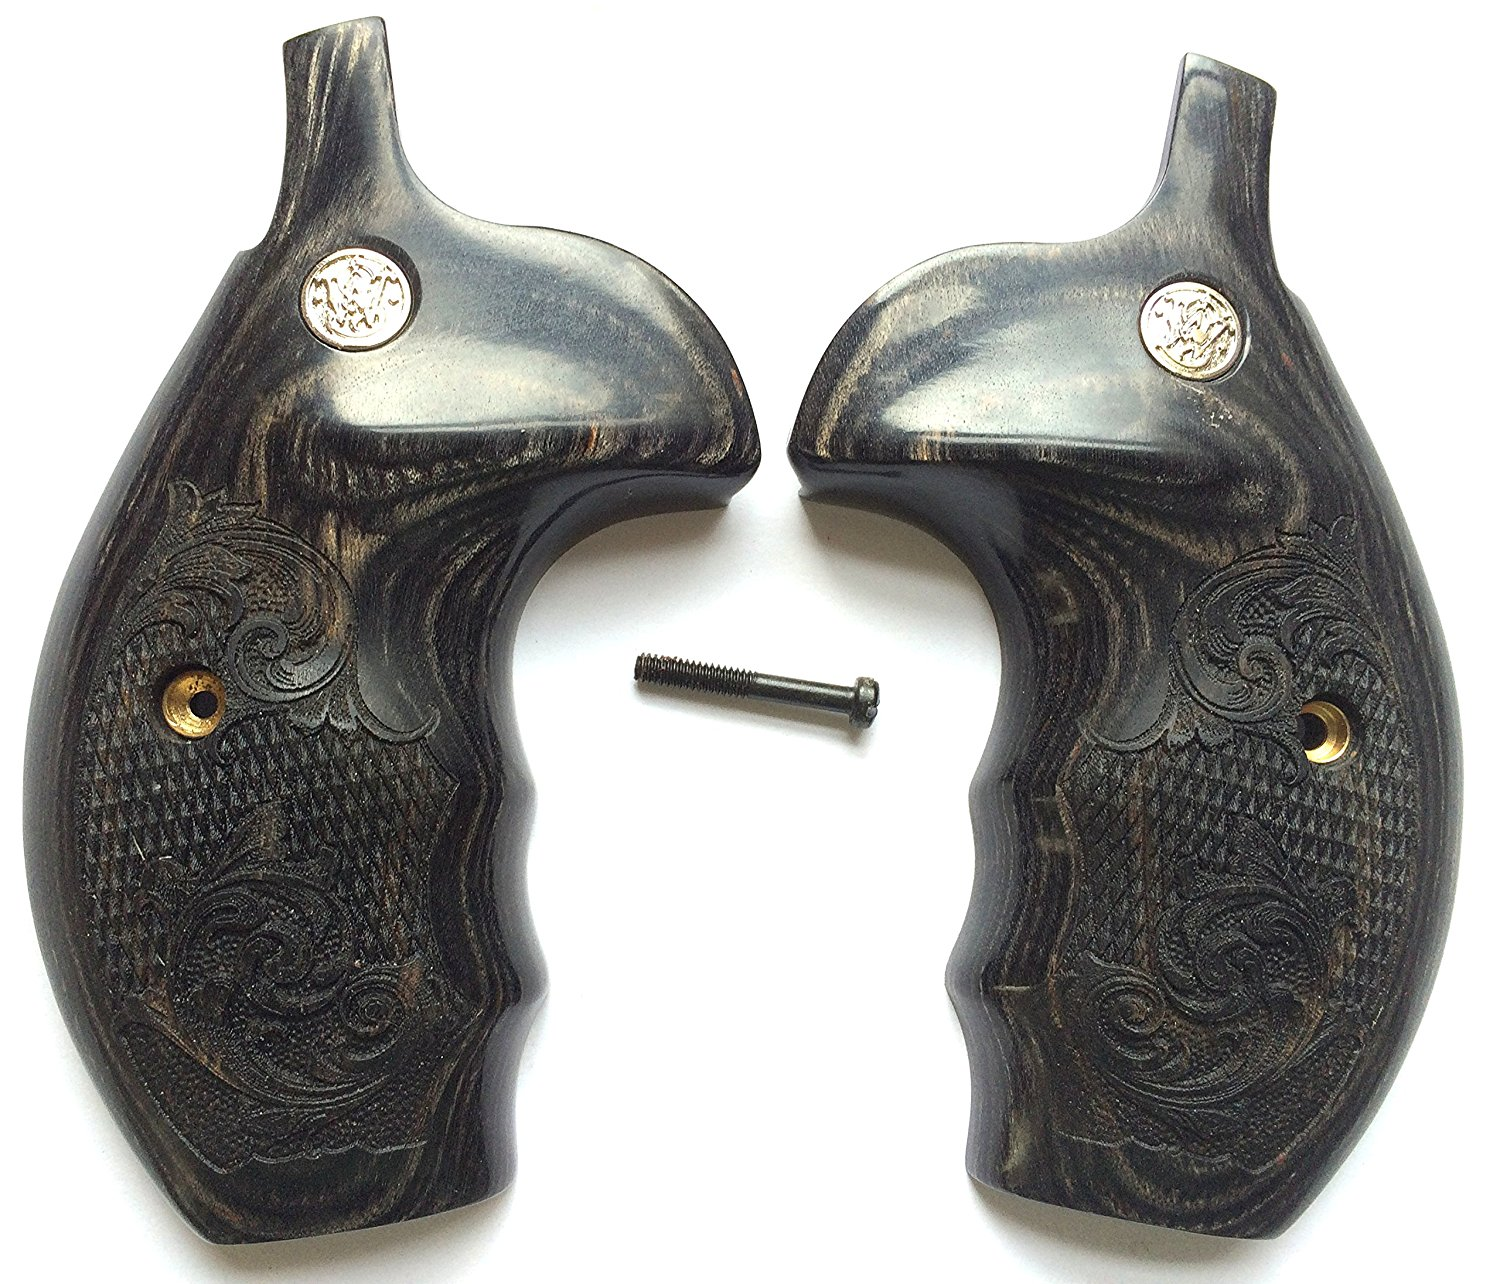 Buy Smith & Wesson Grips S&W K/L/X Frame Grips Silverblack with ...